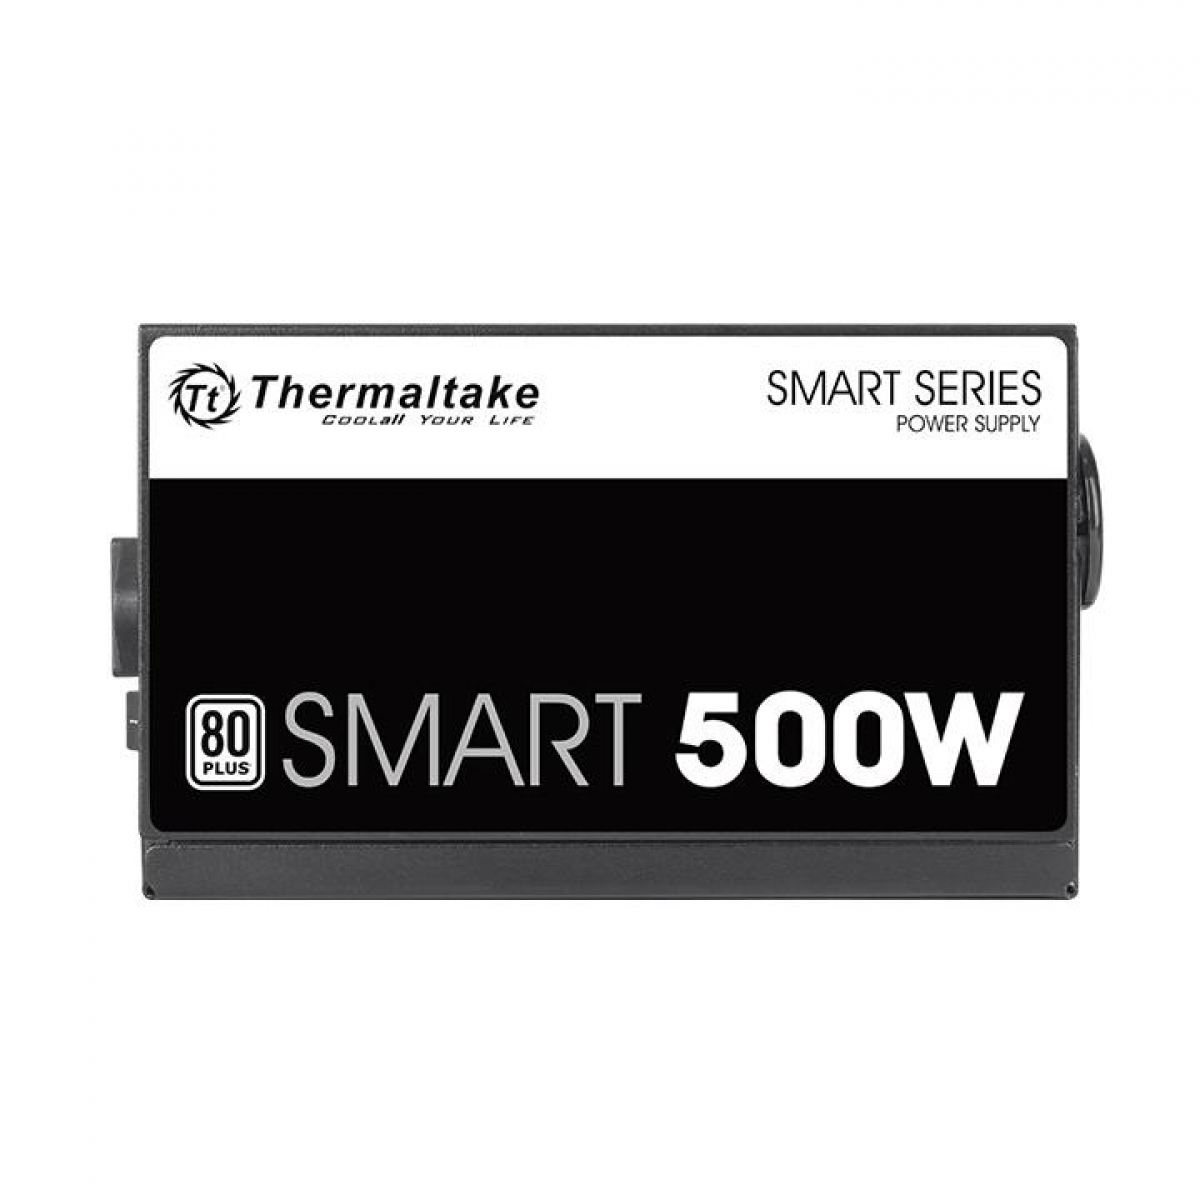 Fonte Thermaltake Smart Series 500W, 80 Plus White, PFC Ativo, PS-SPD-0500NPCWBZ-W